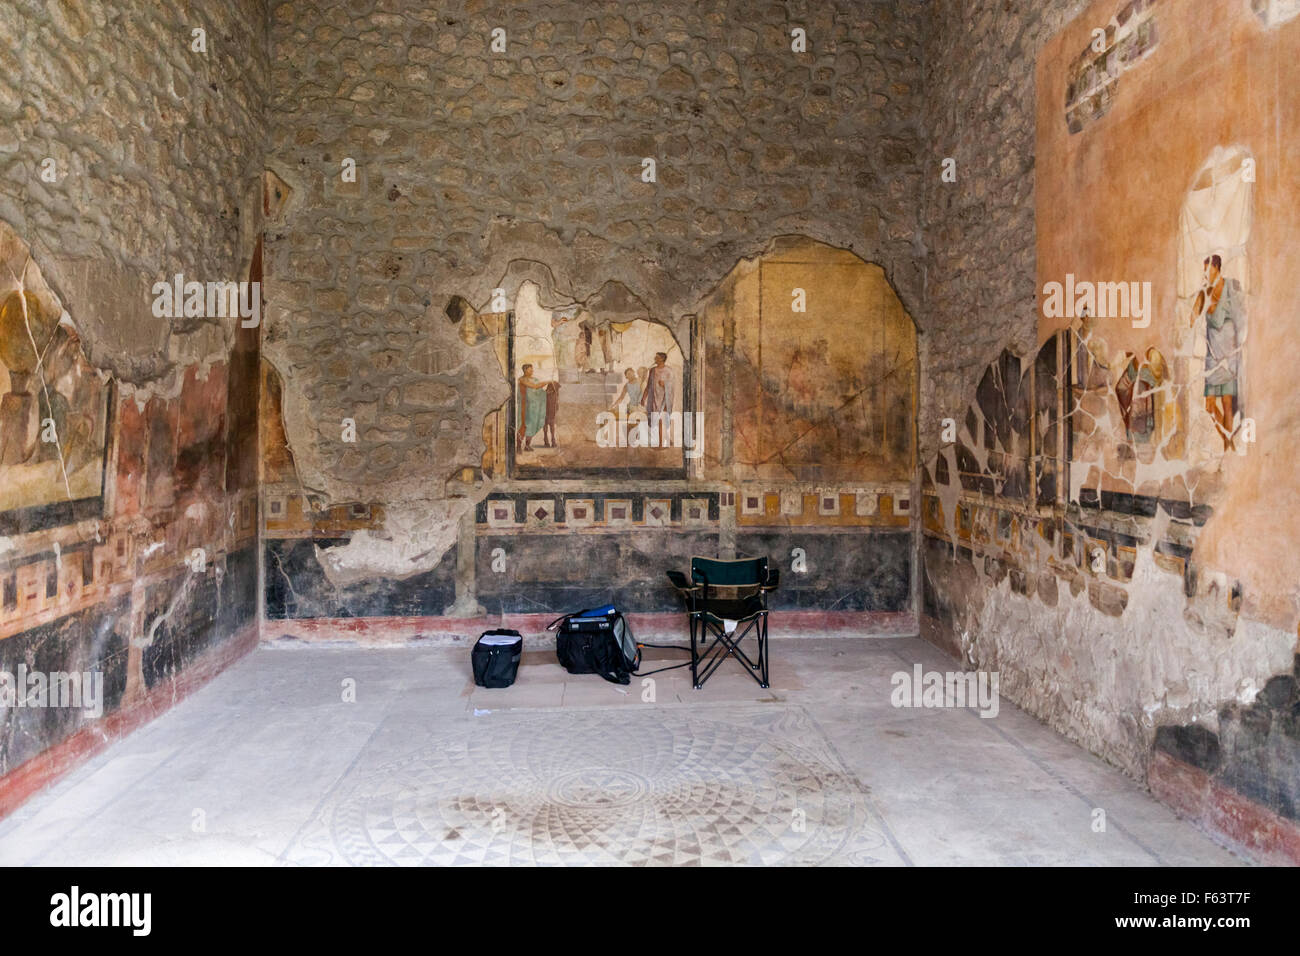 Fresco mural wall paintings at the Casa Degli Amorini Dorati, House of the Gilded Cupids, Pompeii are monitored and restored Stock Photo